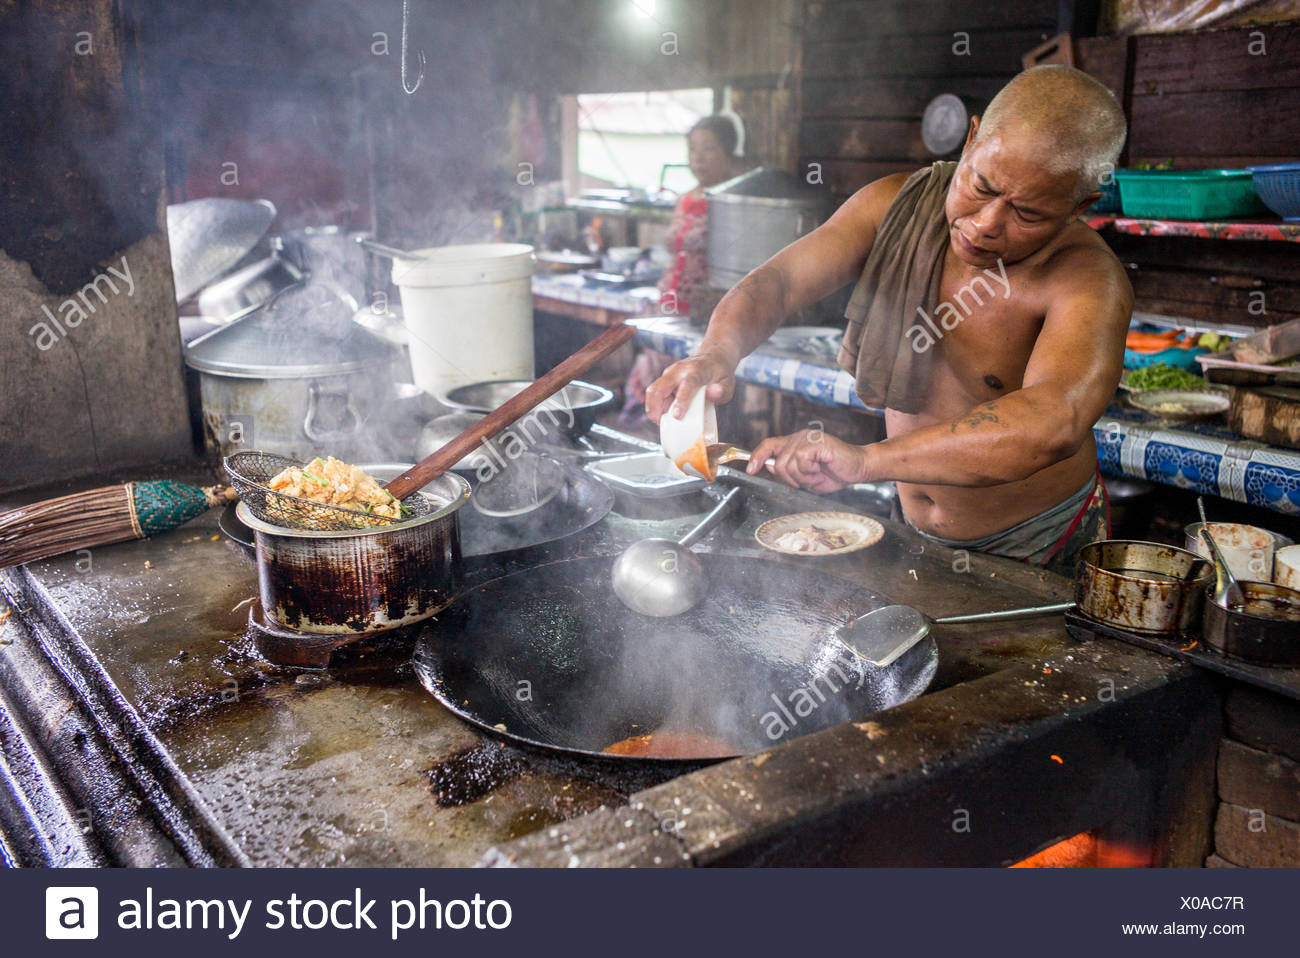 A man prepares a meal in a large, steaming pan. - Stock Image